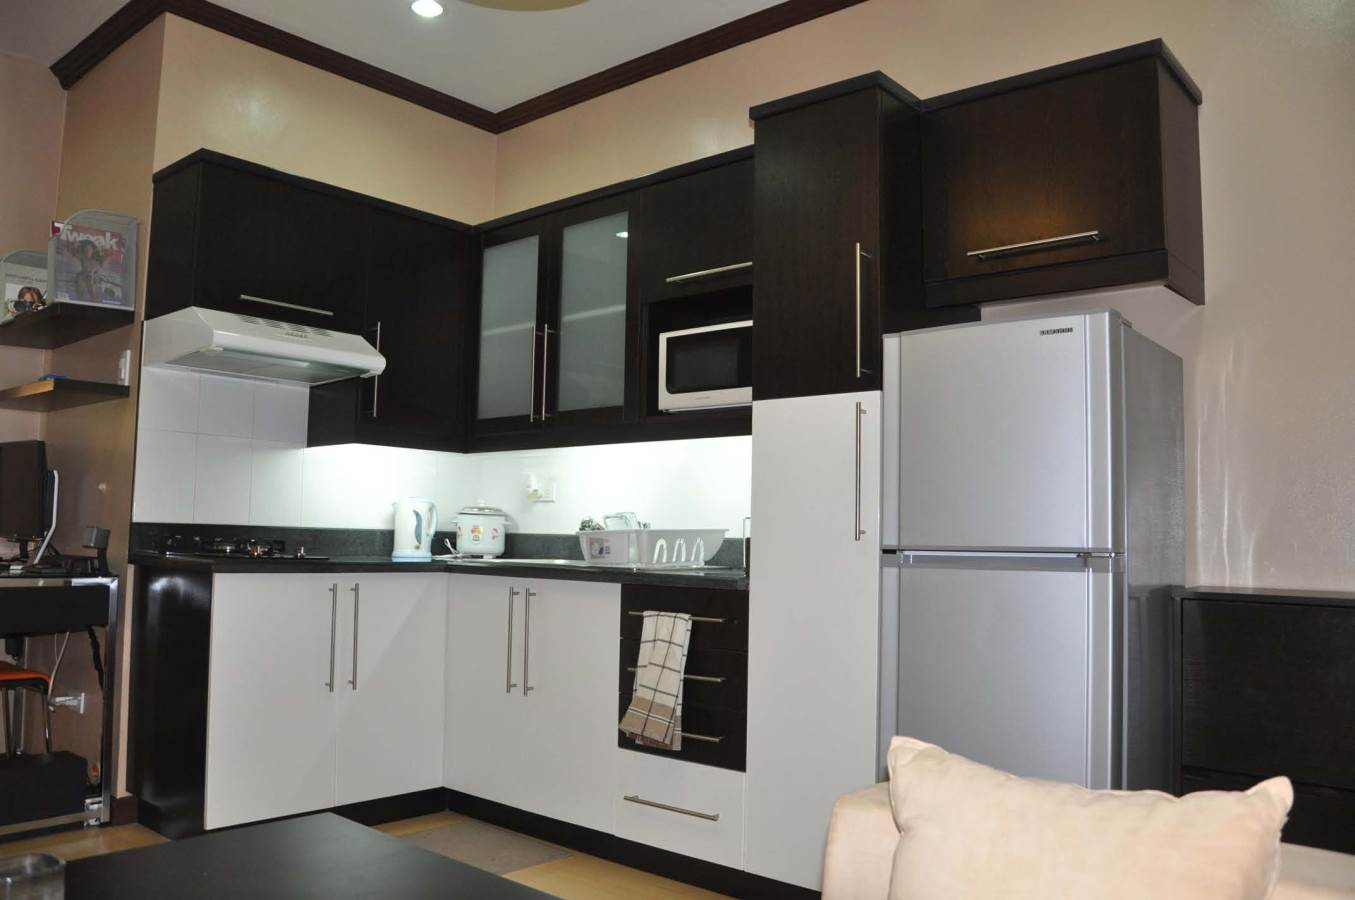 Palaciego Uno Fully Furnished 1 Bedroom Condo Unit For